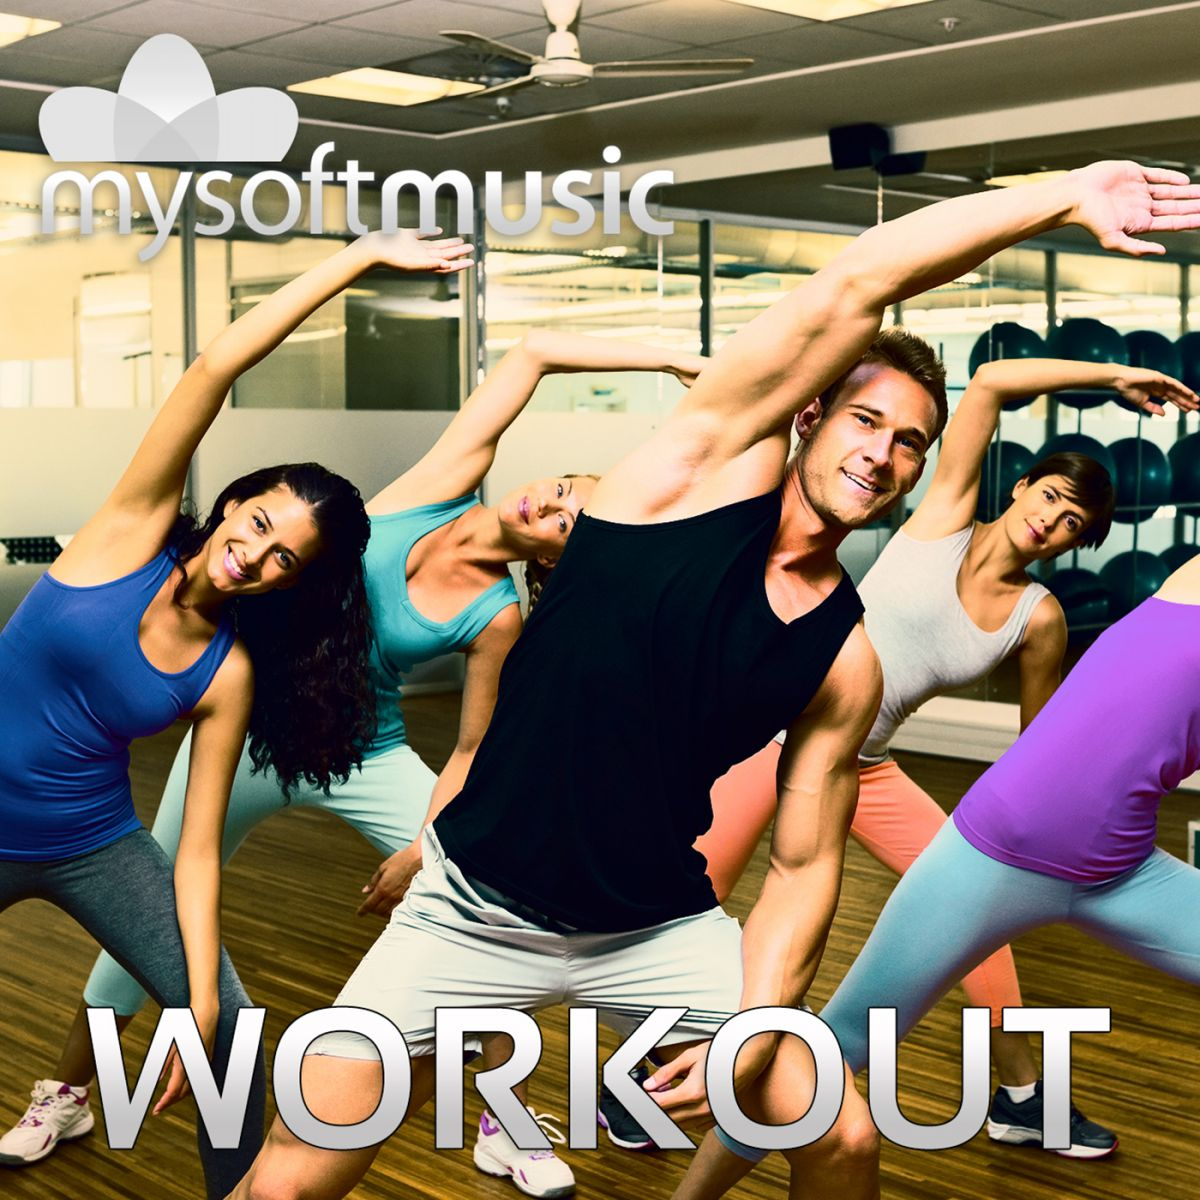 Beaches] Zumba dance workout mp3 download